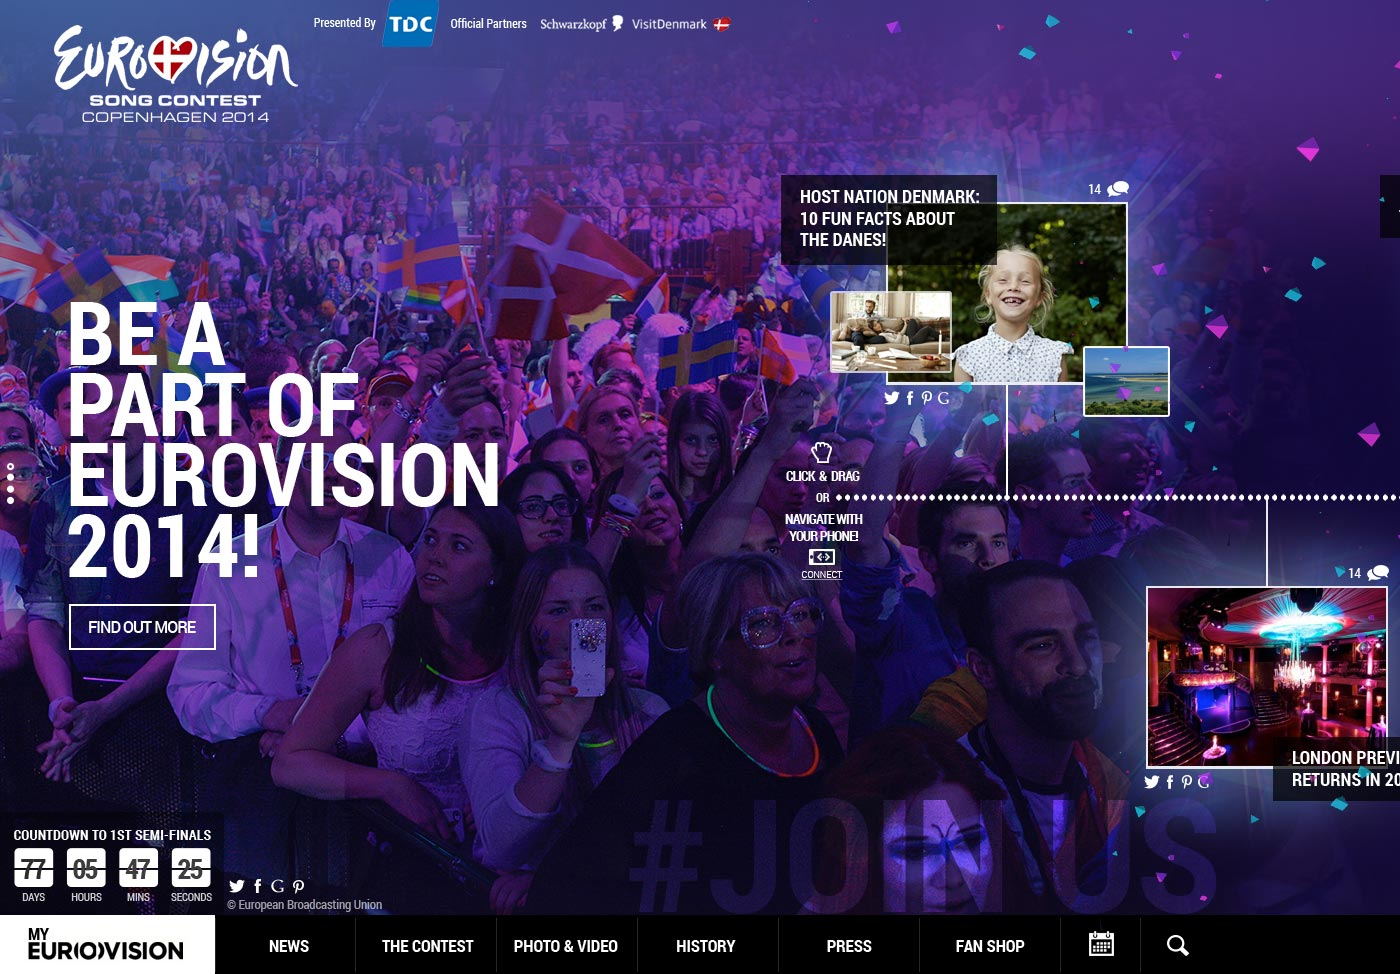 Eurovision Song Contest homepage screen grab